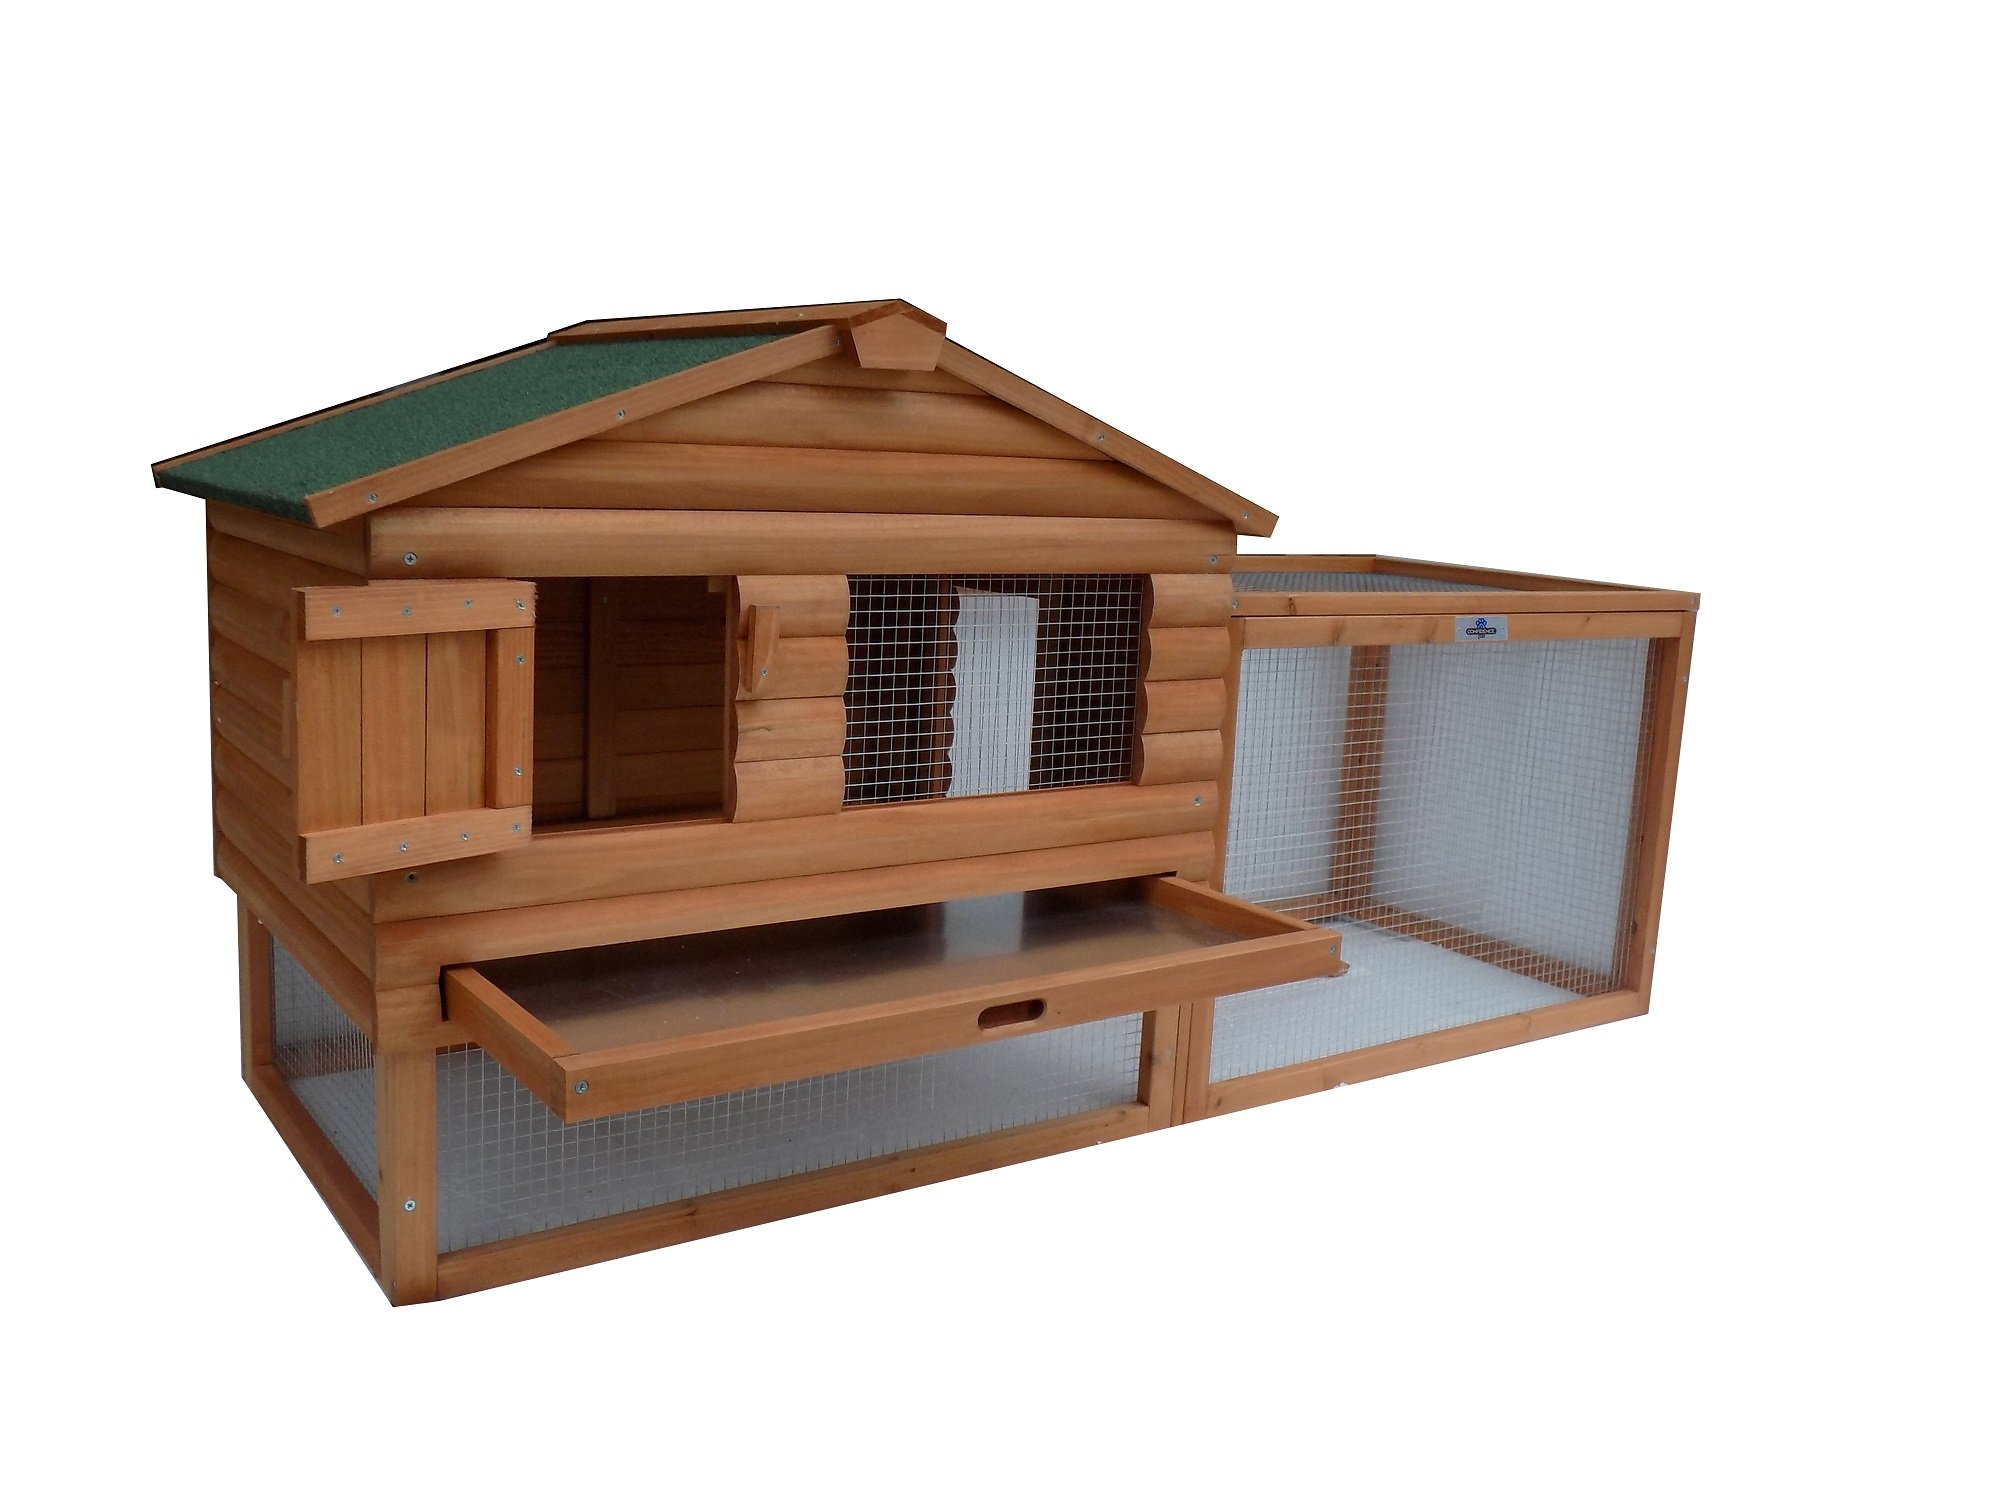 Confidence 62 Inch Rabbit Hutch Chicken Coop by Confidence